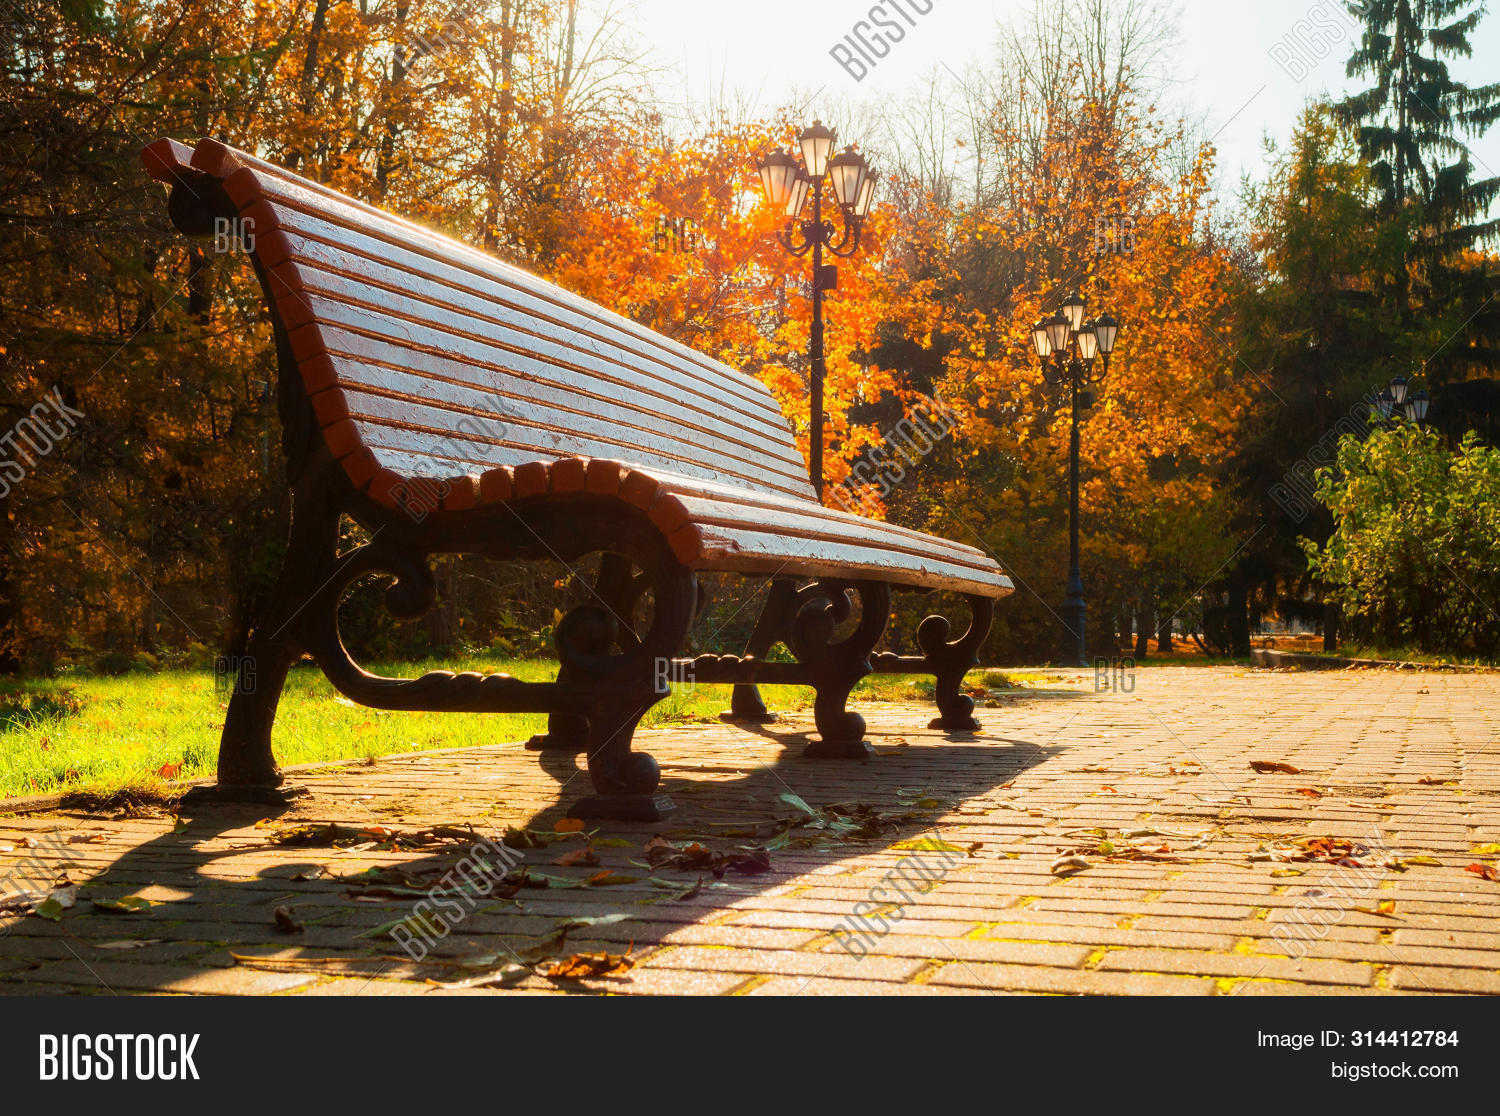 August,November,October-fall,September-fall,alley,autumn,background,fall-bench,city,cloudy,day,deserted,early-fall,fall,foliage,forest,golden,green,landscape,leaves,natural,nature,nice,nobody,orange,park,scene,season,seasonal,sun,sunlight,sunny,sunset,sunshine,trees,weather,fall-forest,fall-landscape,fall-nature,fall-scene,fall-trees,fall-background,fall-leaves,fall-park,fall-outdoors,fall-leaf,fall-alley,fall-sunset,yellow,yellowed